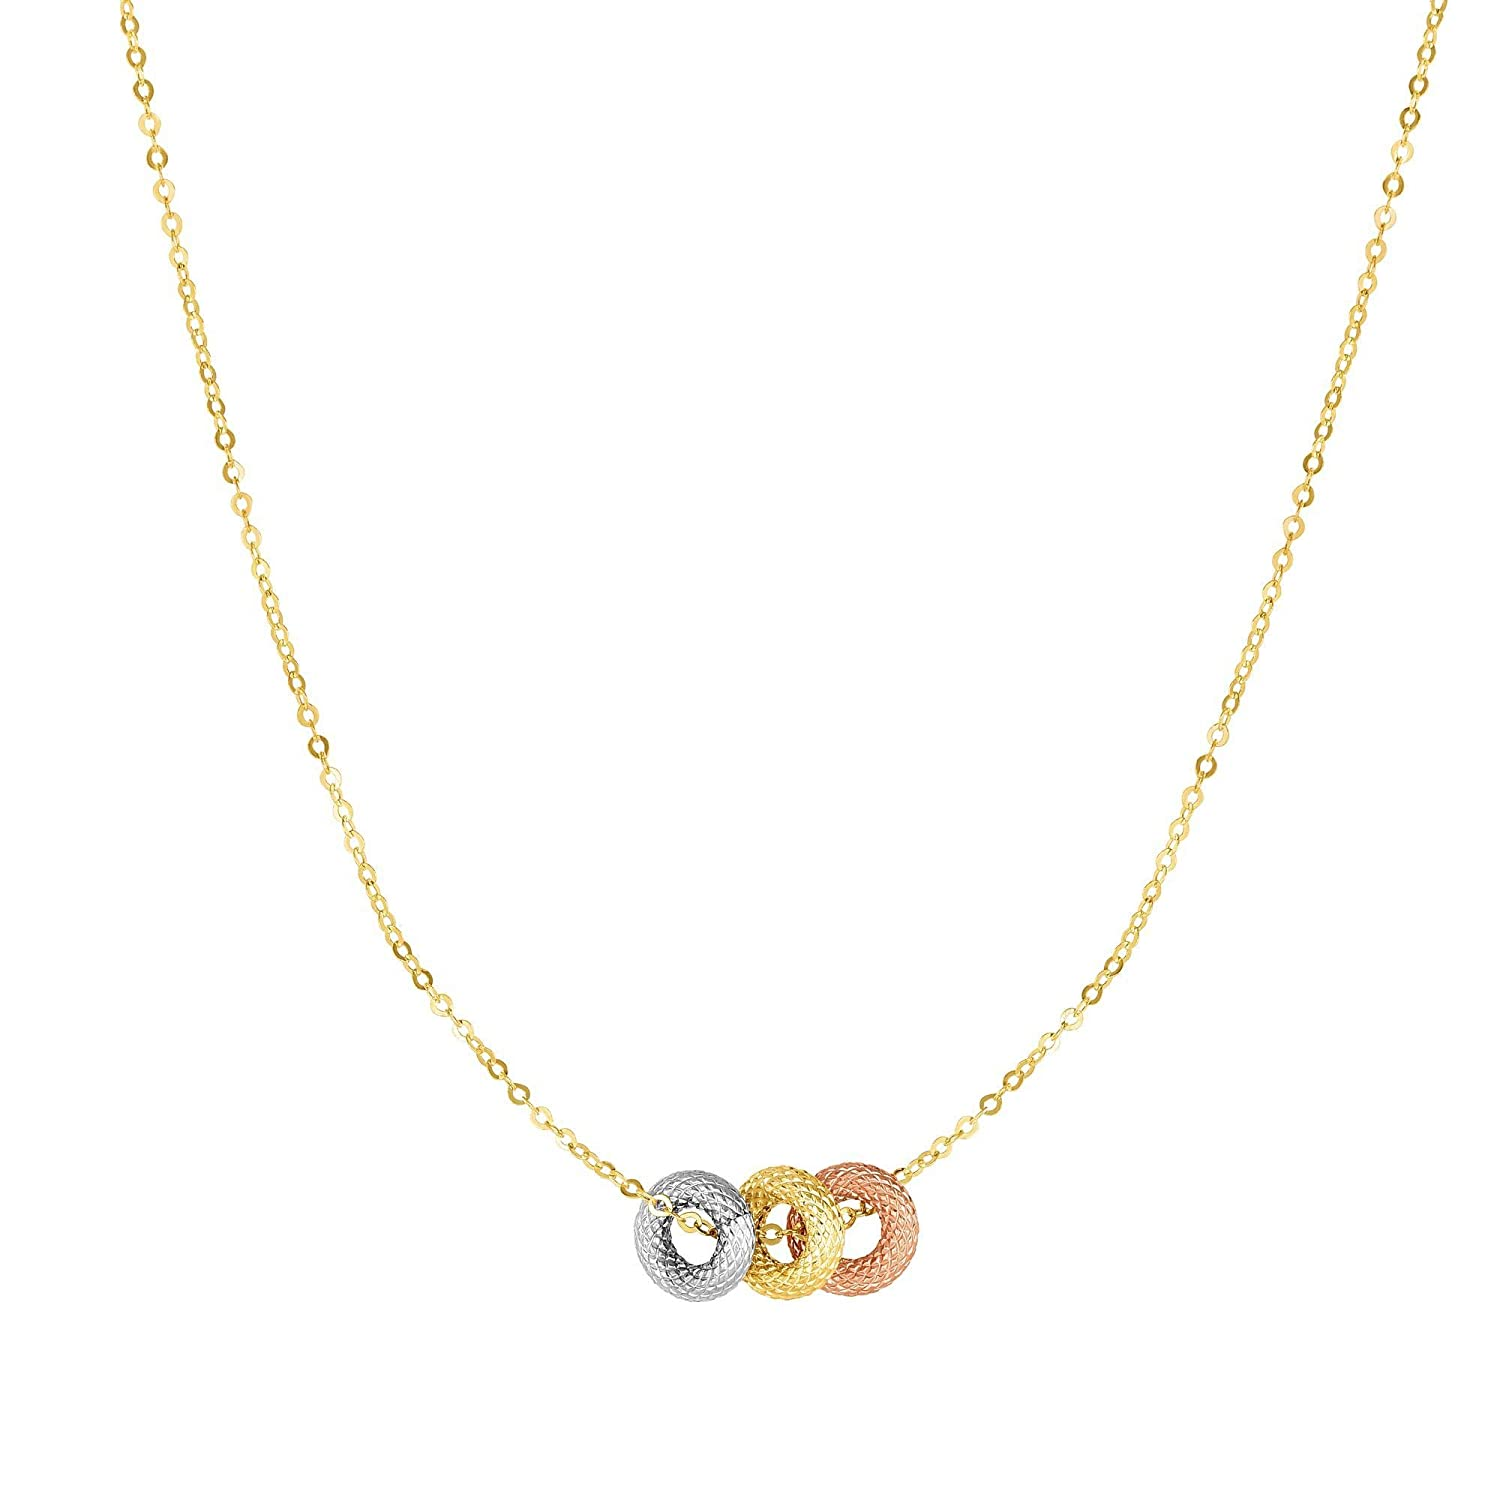 Rose /& White Gold Textured Cable Chain Link 18 Tri-Color Donut Adjustable Charm by IcedTime 14K Yellow